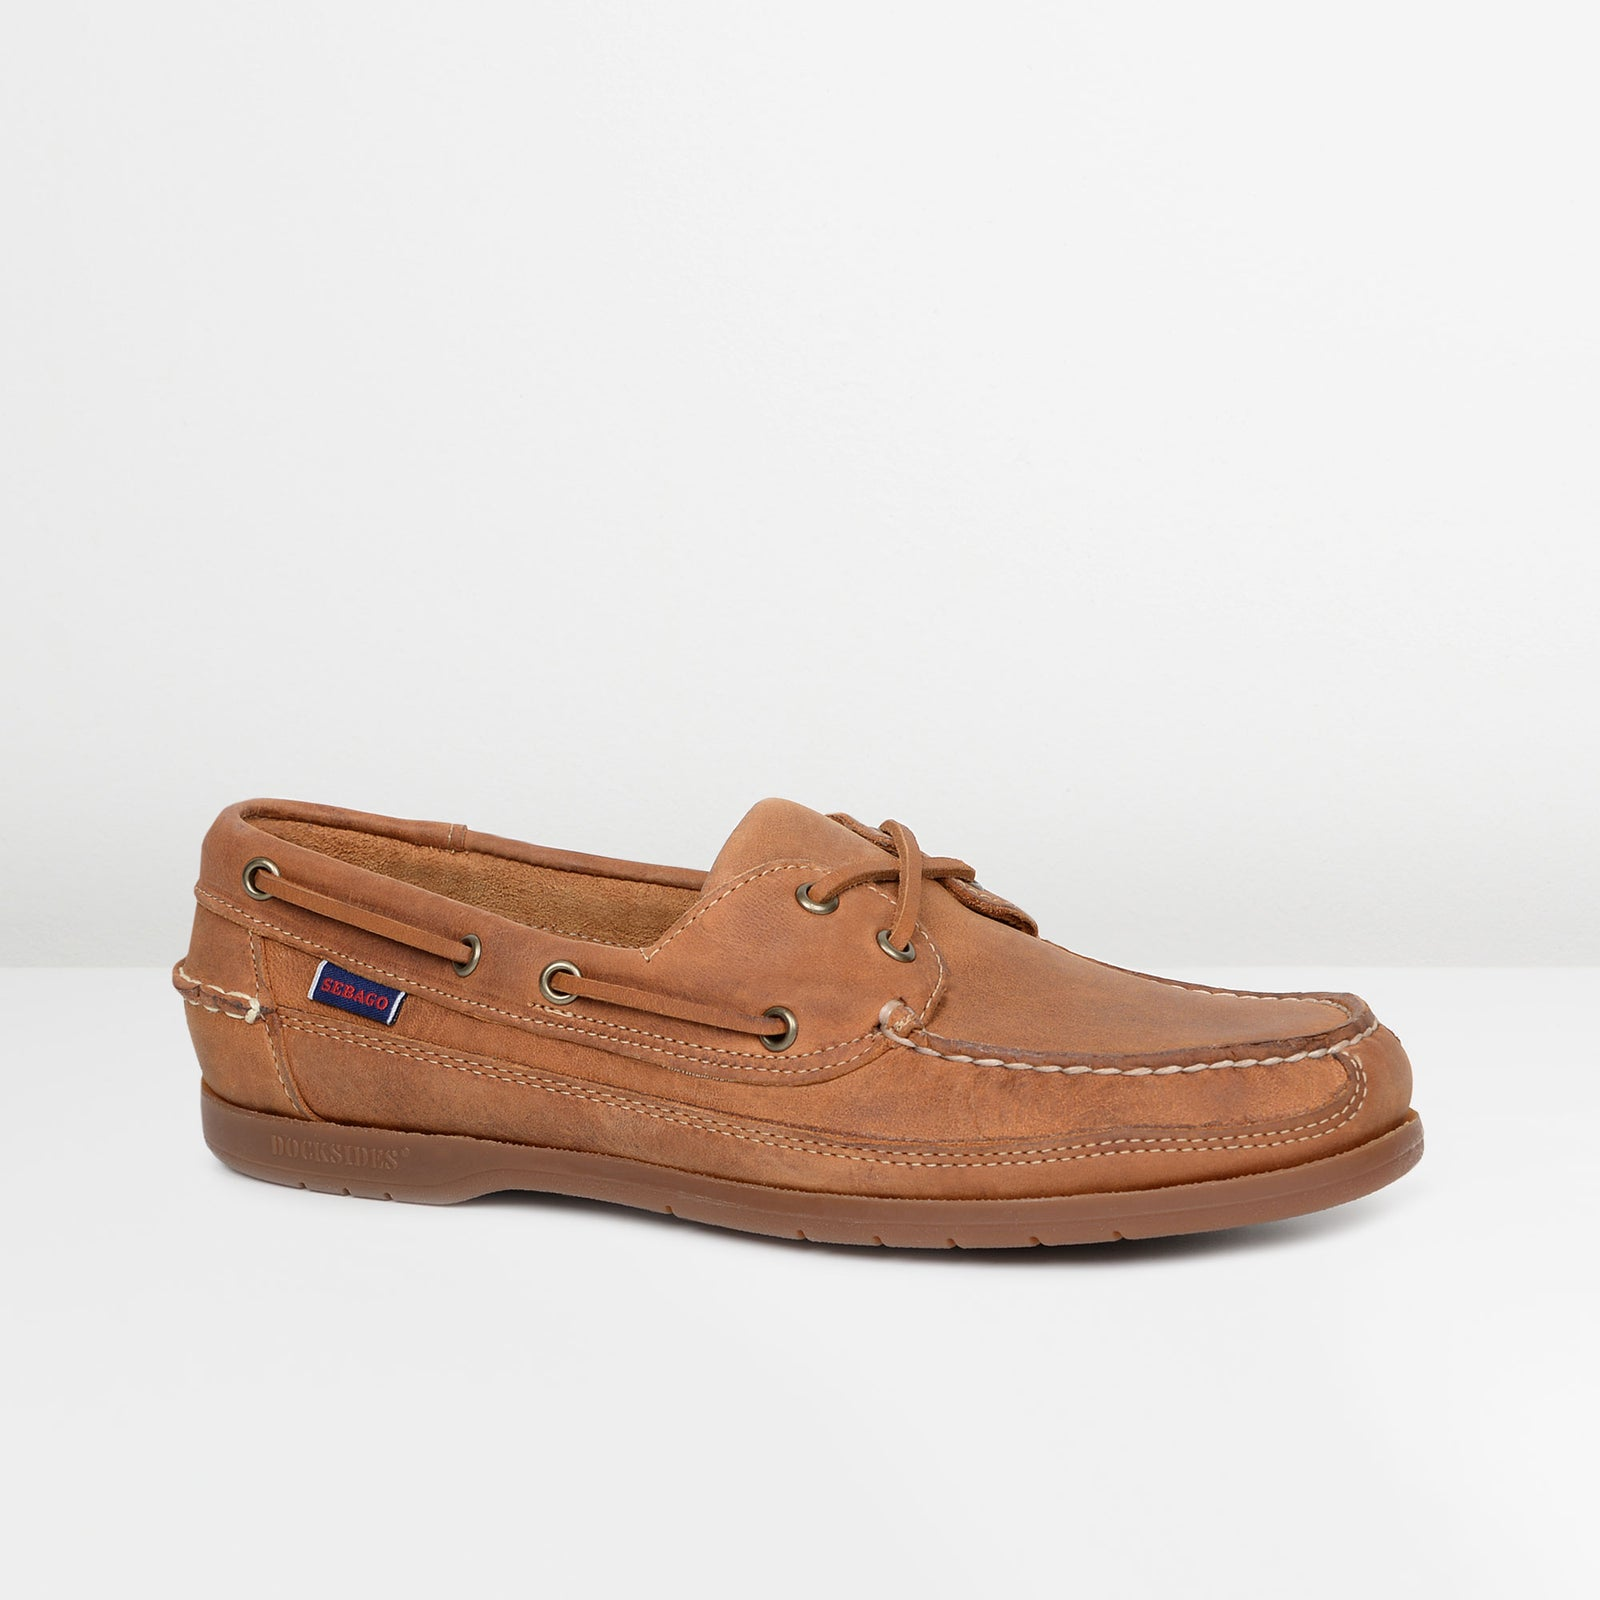 Brown Tan Vintage Leather Schooner Boat Shoes